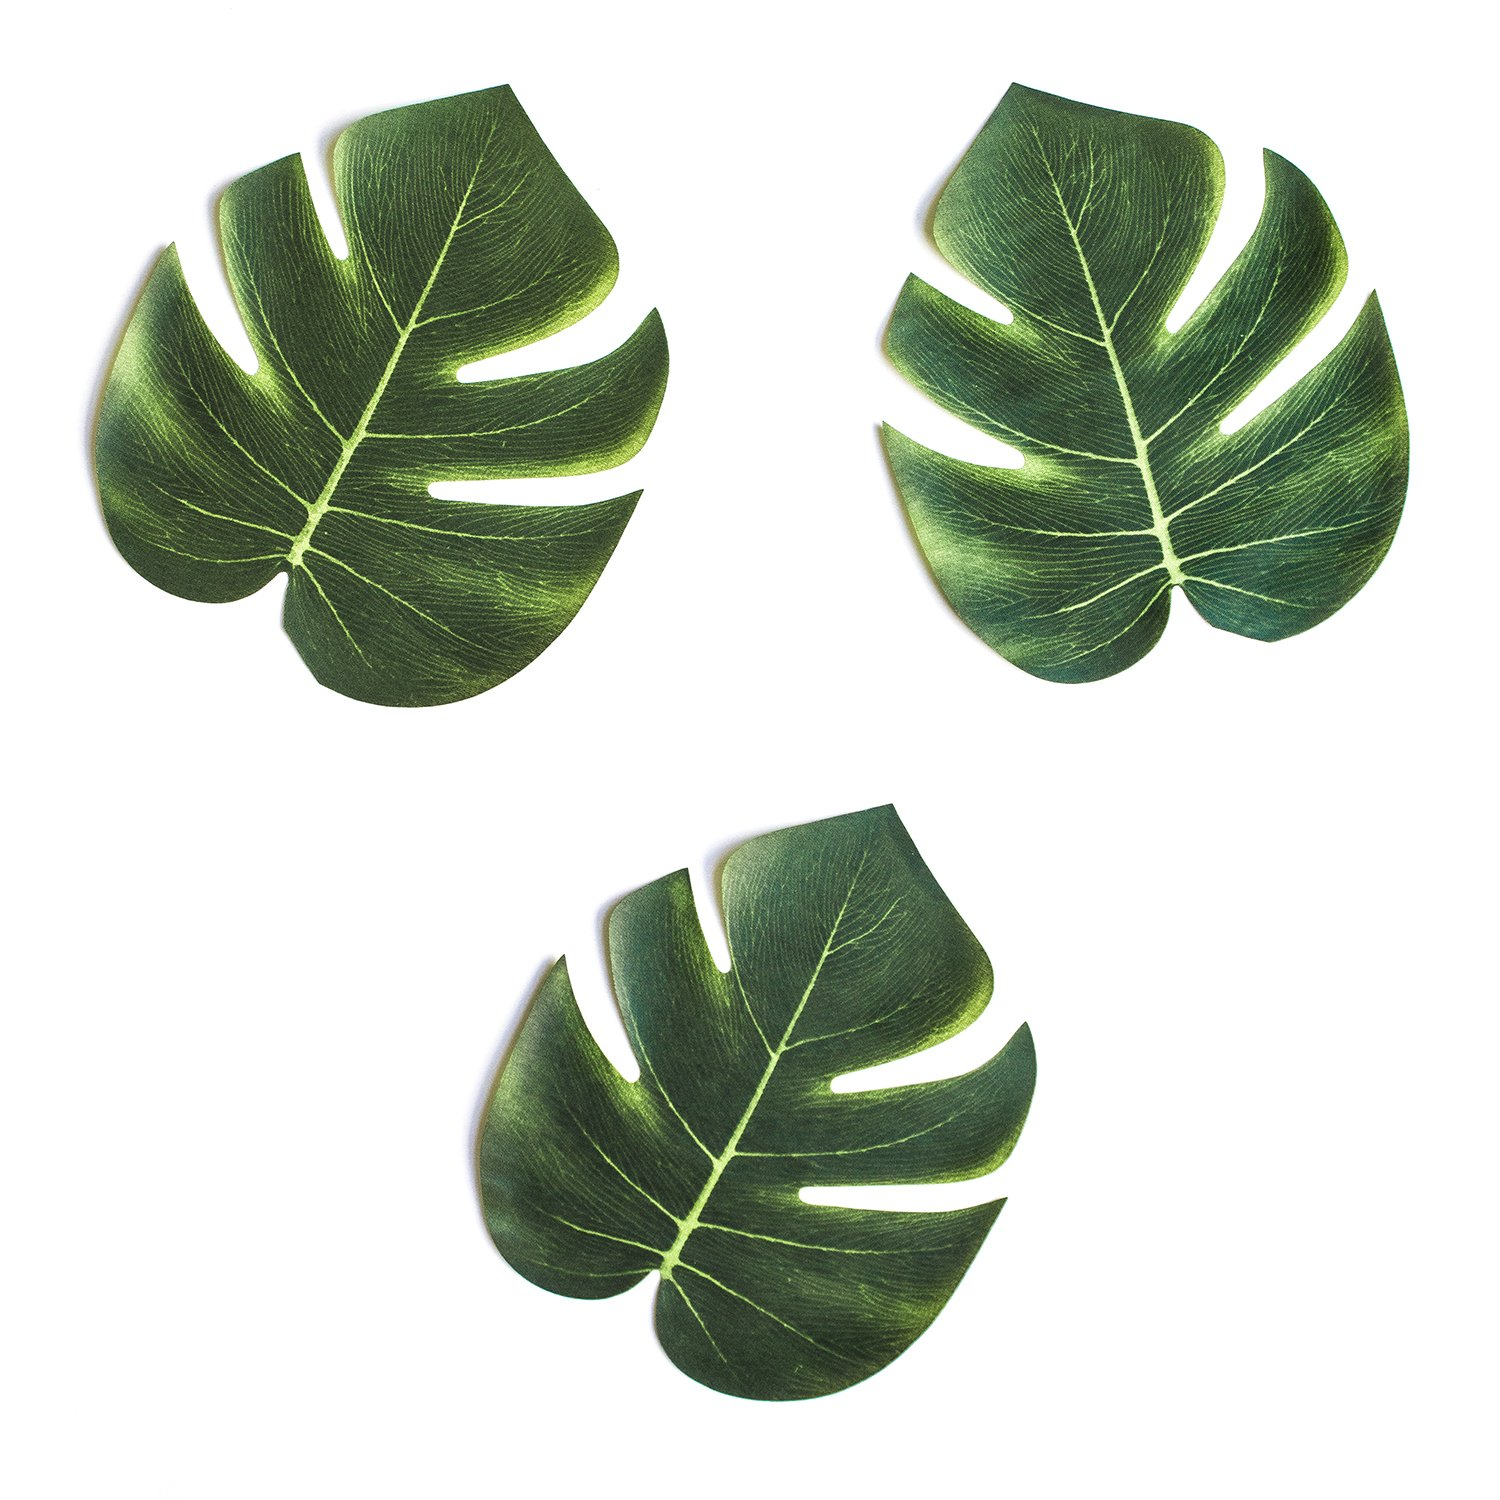 Amazon.com: Super Z Outlet Tropical Imitation Plant Leaves 8 ...